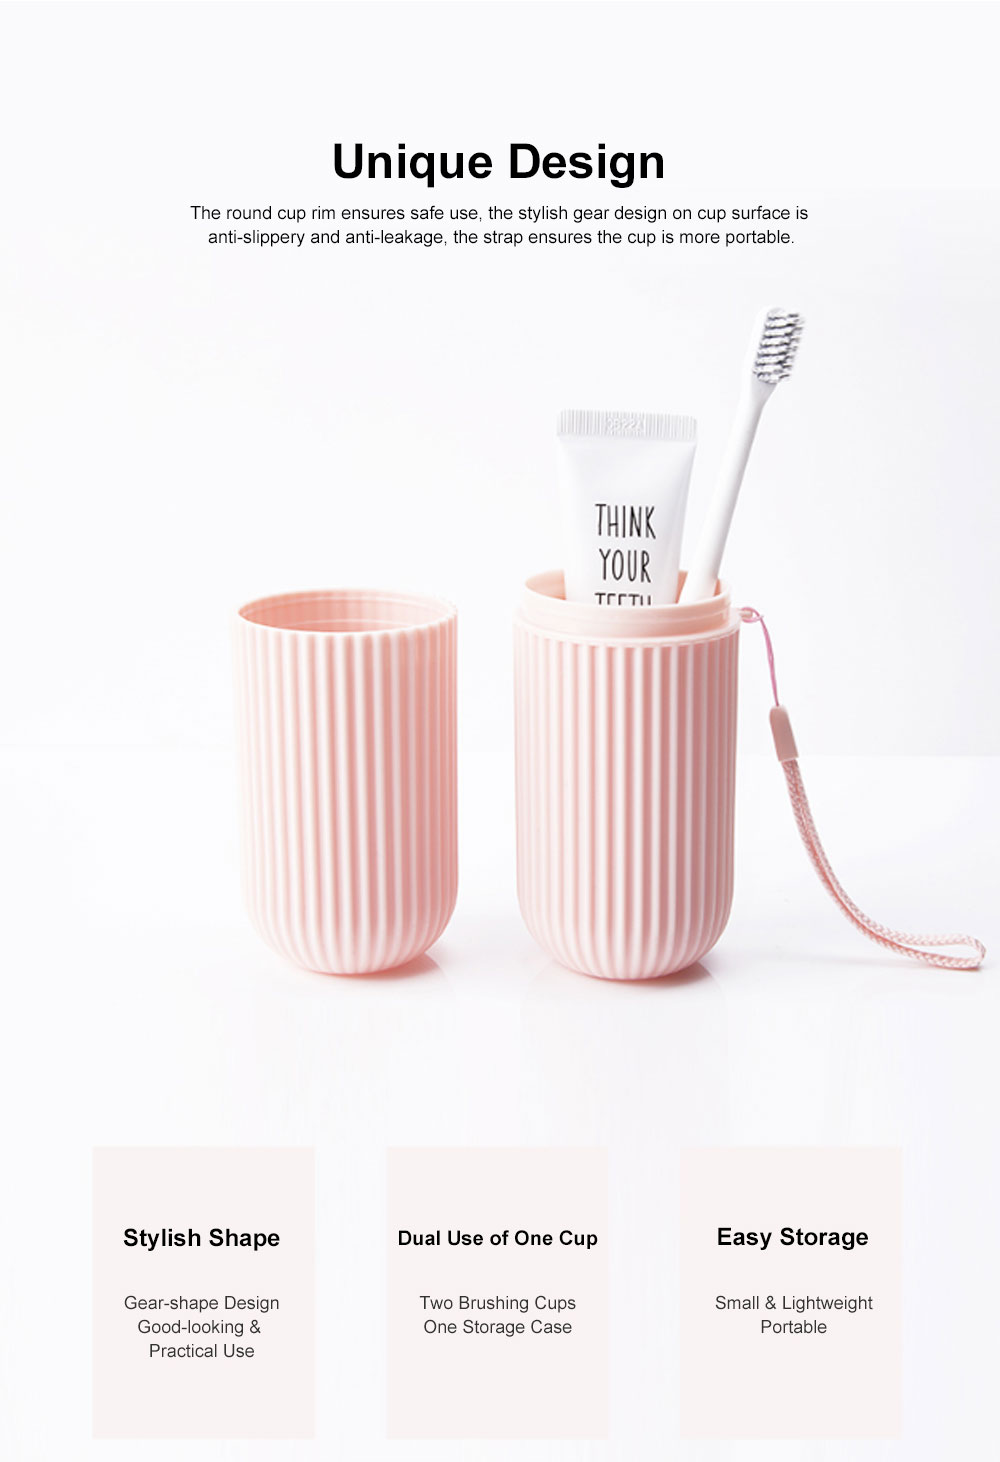 Simple Style Cup for Household or Travel Portable Tooth-brushing Mug Travel Set Couple Cup Household Toothbrush Storage Box 5